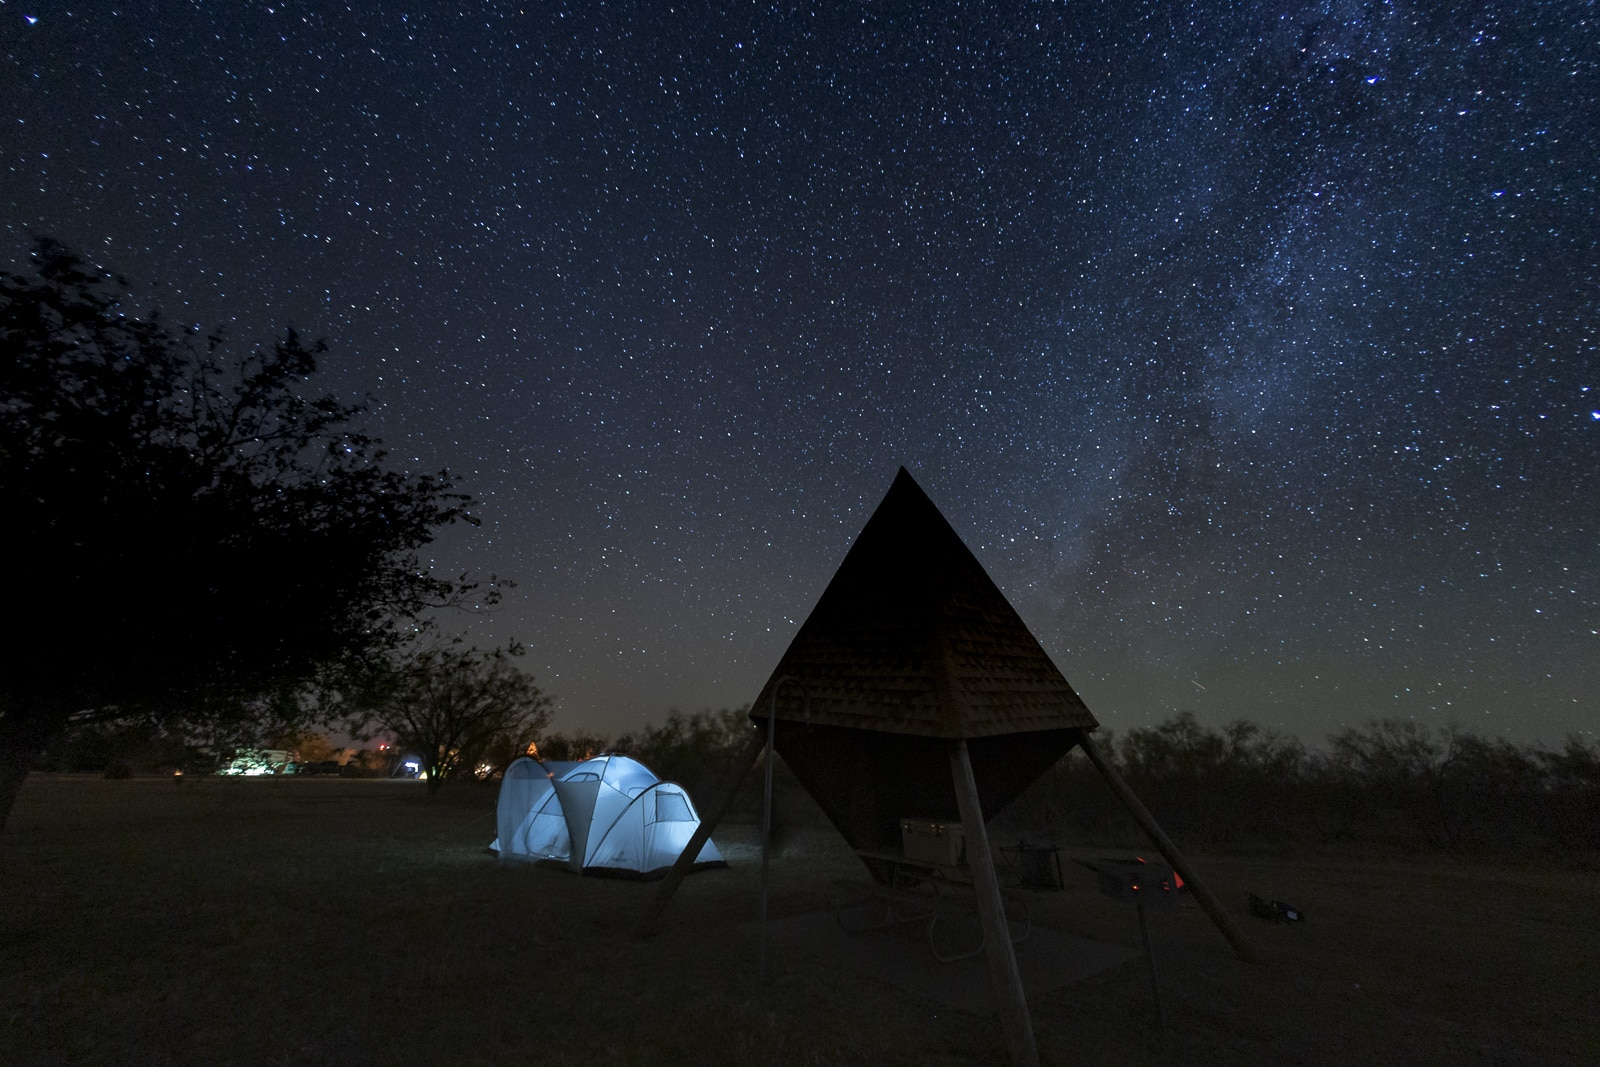 Stargazing at Copper Breaks State Park, Texas